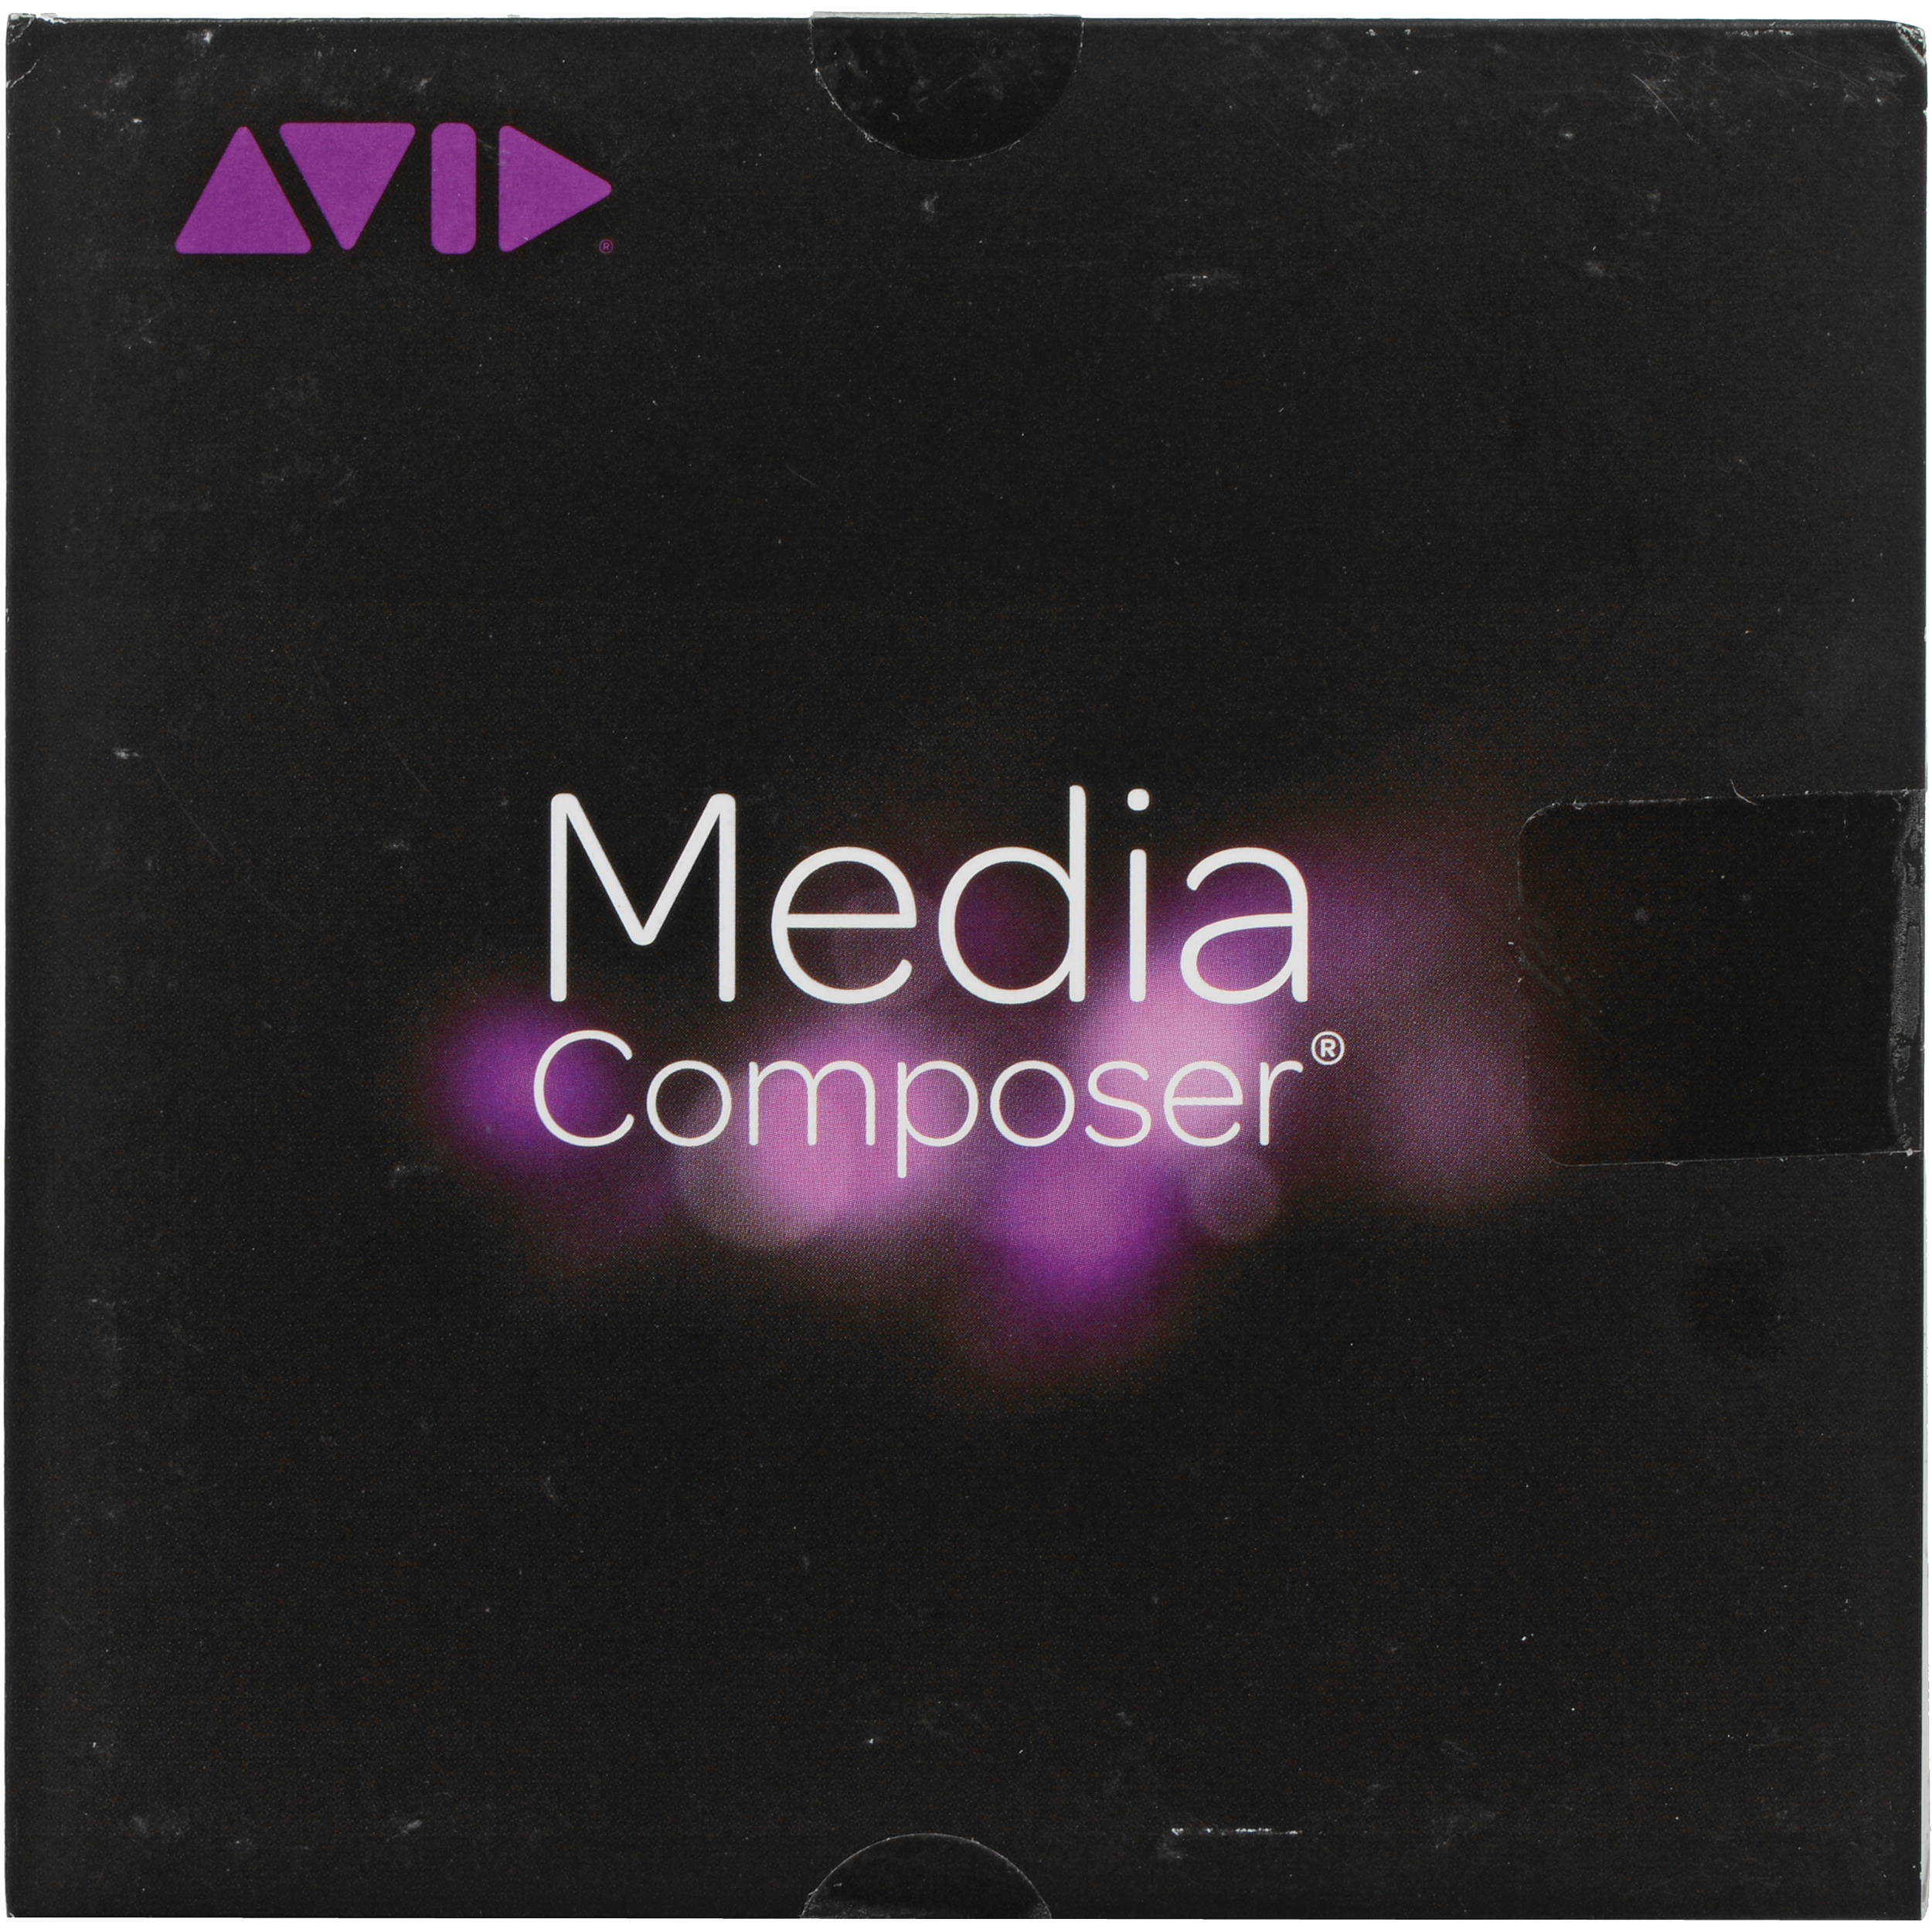 Free avid dongle download